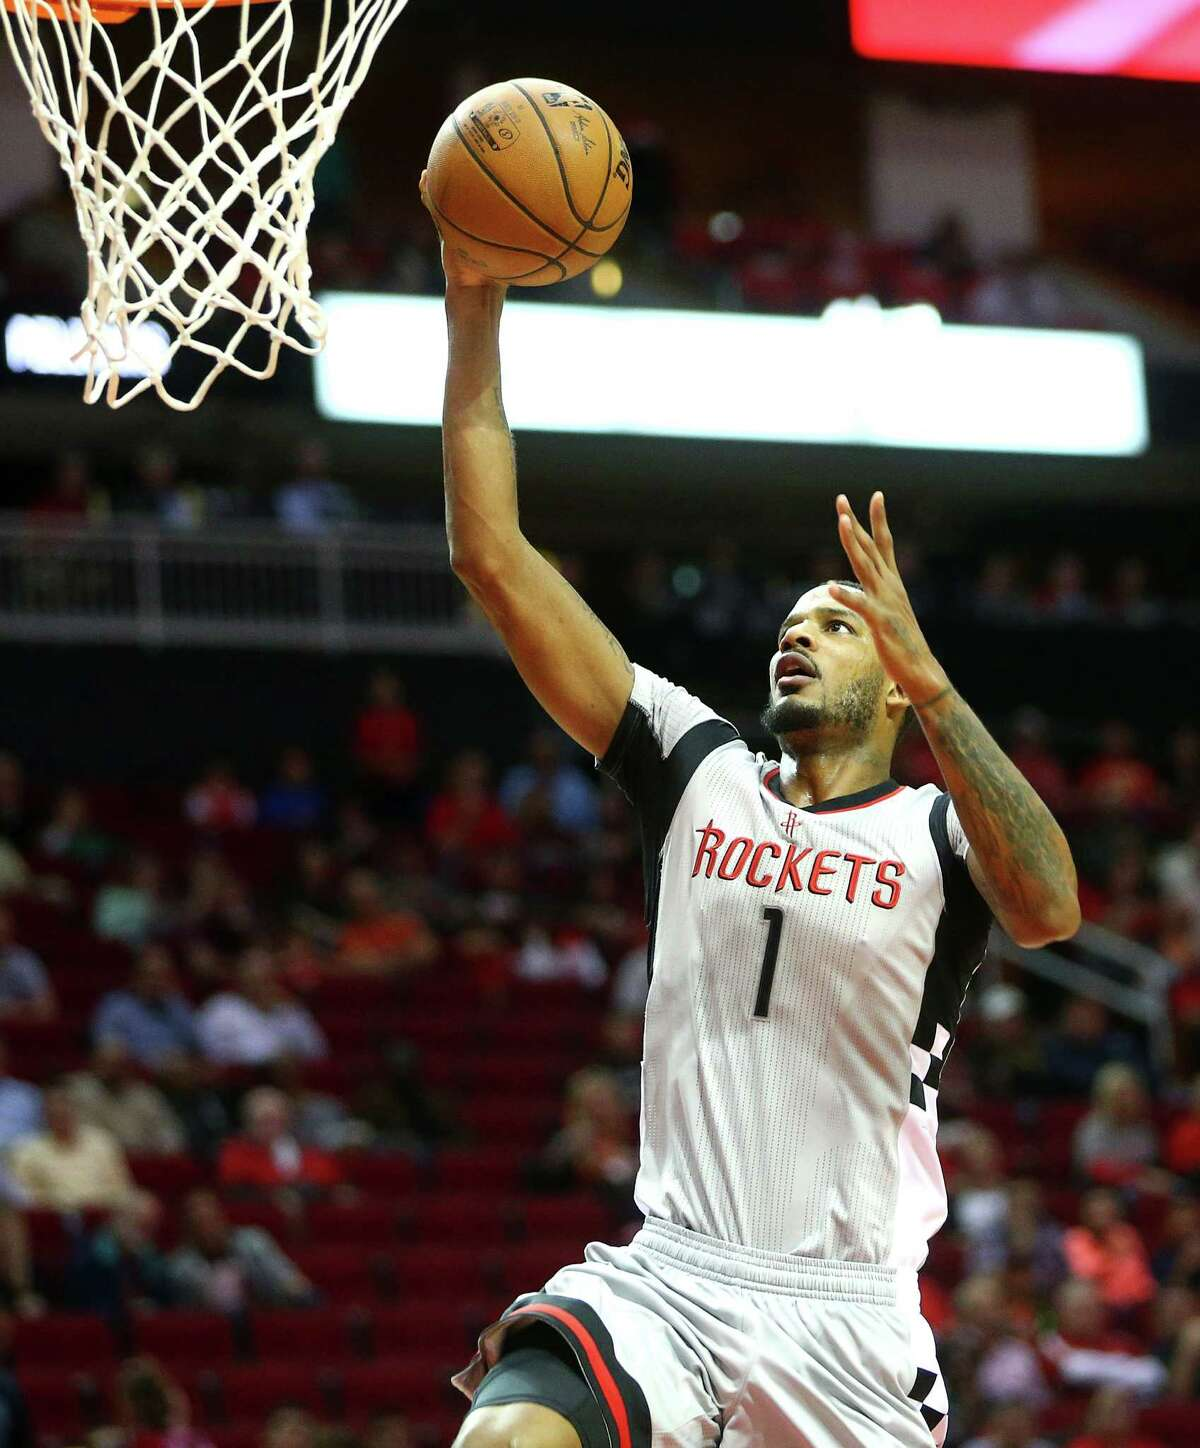 Houston Rockets forward Trevor Ariza (1) scores during the first quarter of an NBA game, at the Toyota Center, Friday, Dec. 16, 2016, in Houston.